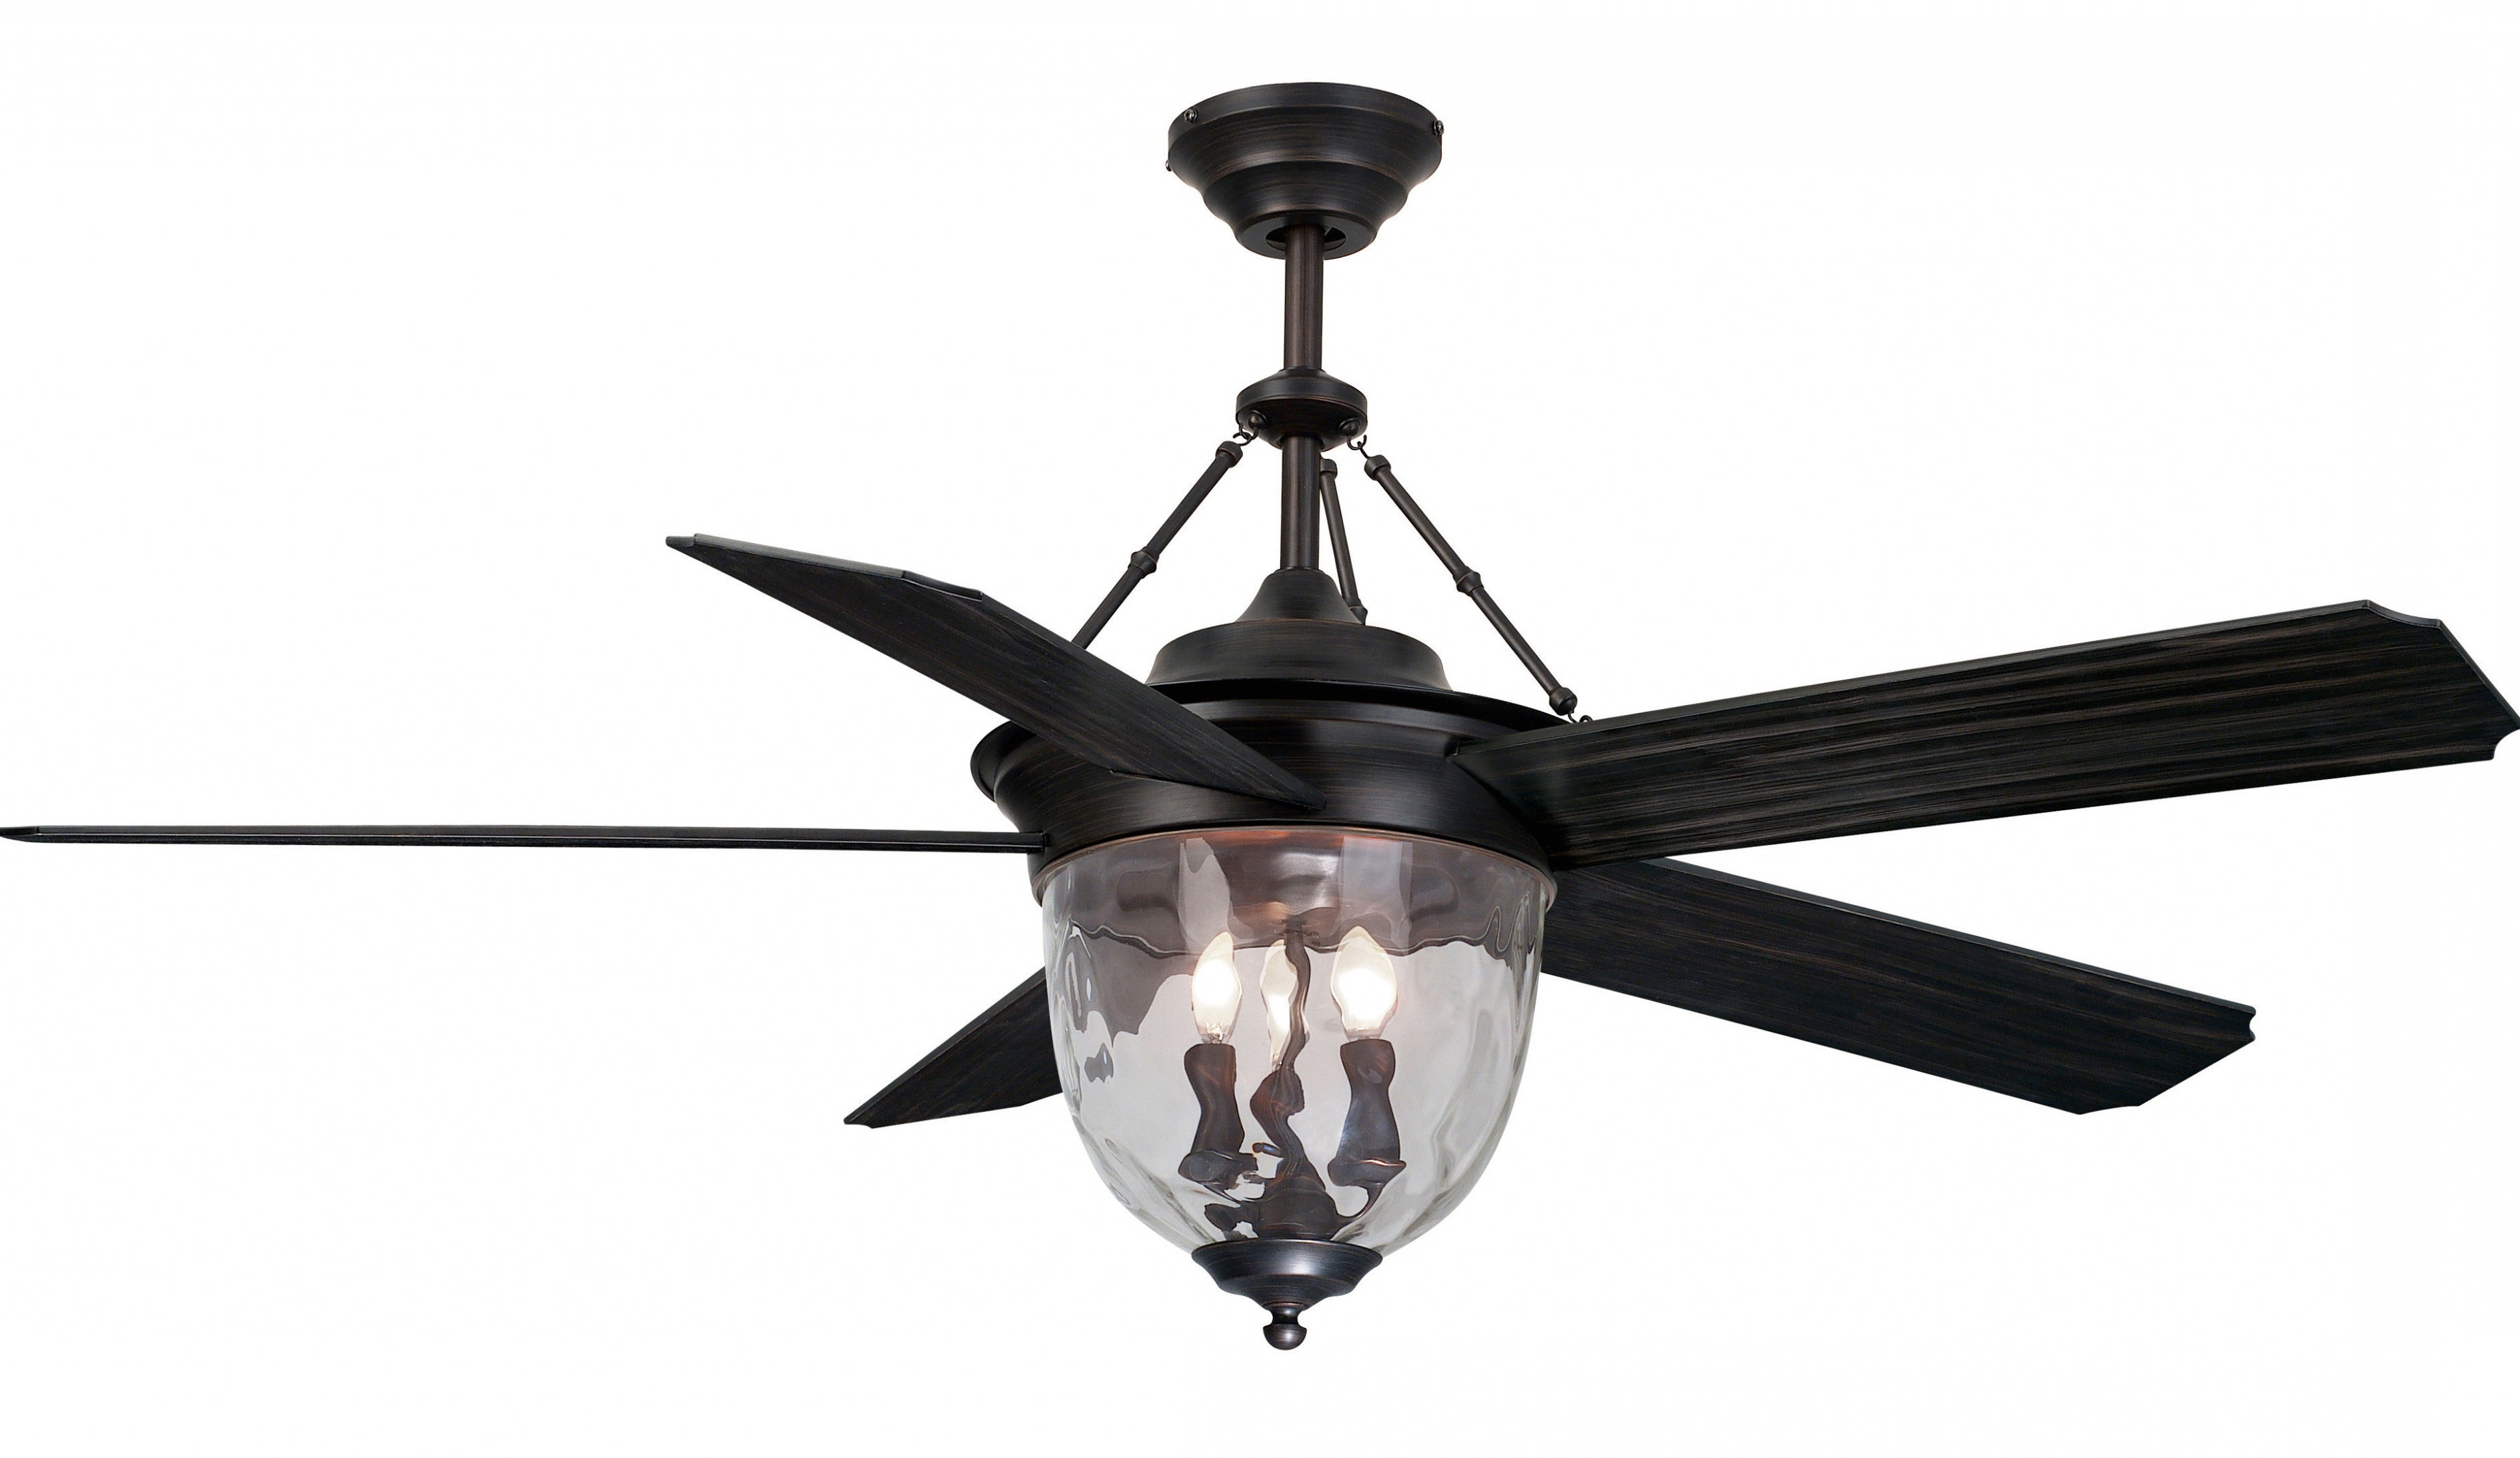 Lowes Outdoor Ceiling Fans With Lights Inside Most Up To Date Lowes Outdoor Ceiling Fans With Lights Fabulous Bathroom Ceiling (Gallery 6 of 20)